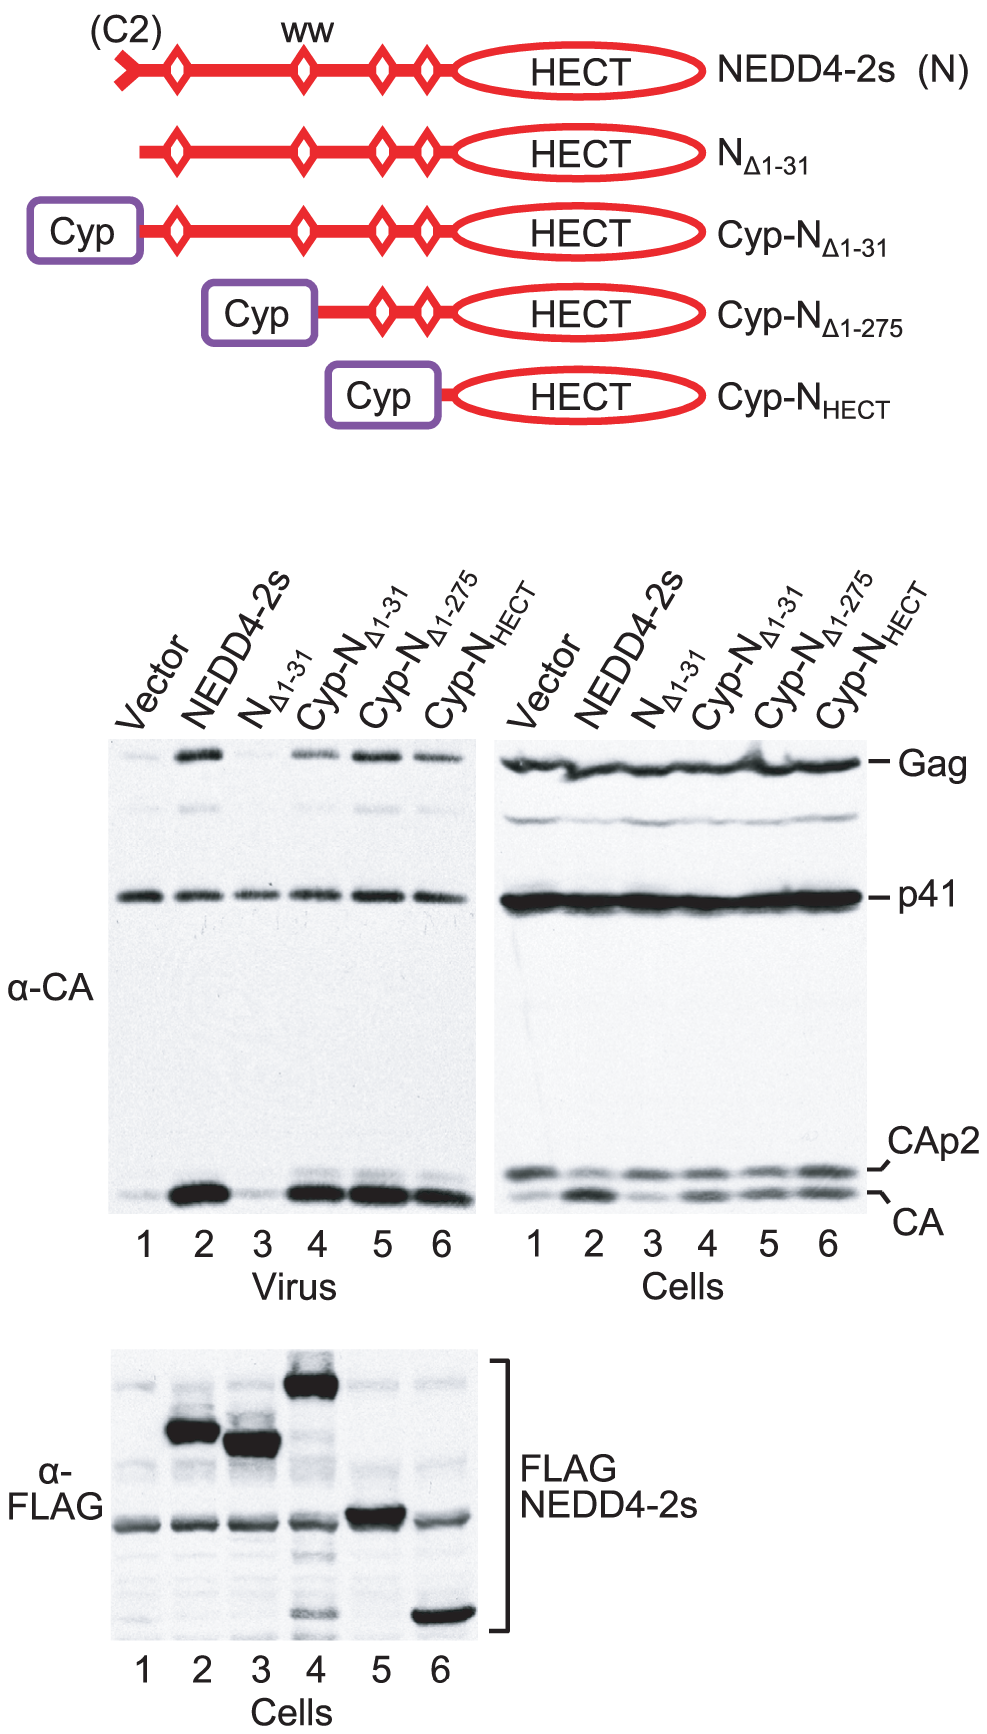 The isolated HECT domain of NEDD4-2s rescues HIV-1<sub>ΔPTAPP</sub> when targeted to Gag.